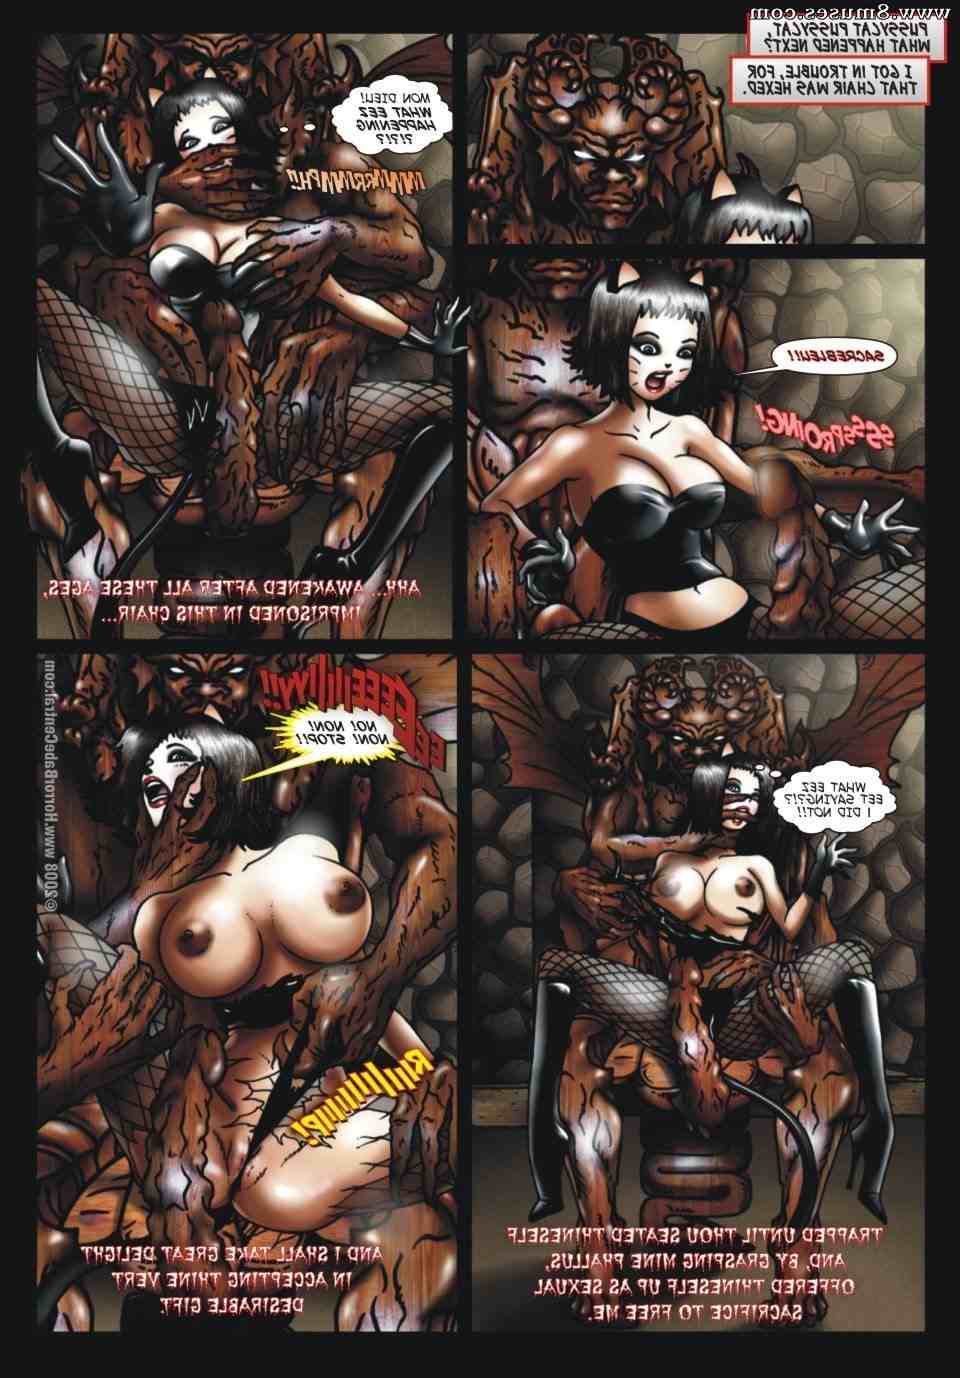 Central-Comics/Horror-Babe-Central/Fable-of-Fright Fable_of_Fright__8muses_-_Sex_and_Porn_Comics_88.jpg